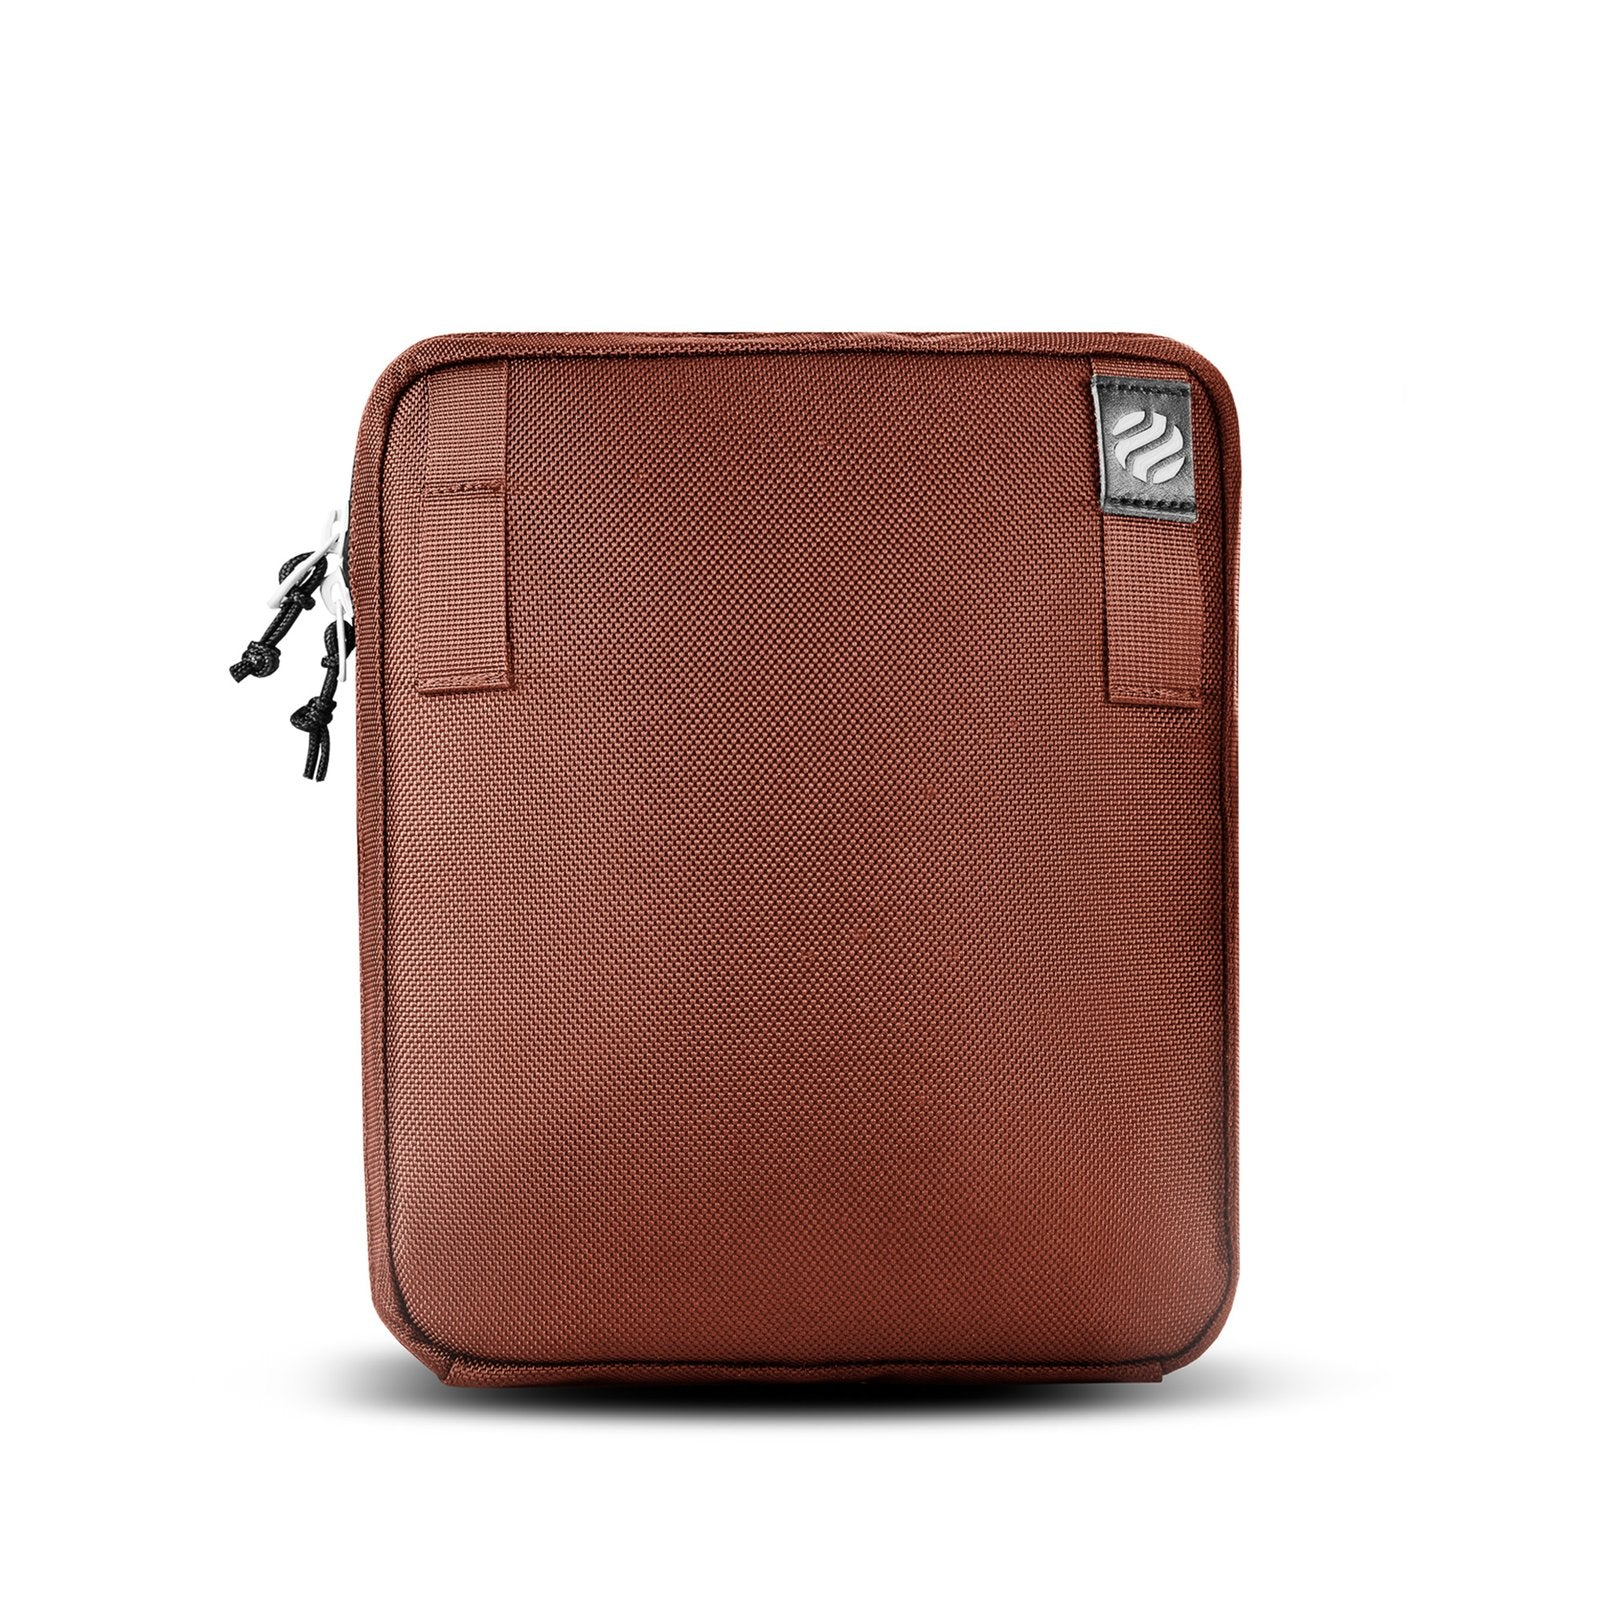 MONOLITH POUCHLARGE-コッパーレッド Heimplanet ポーチ Suburban.